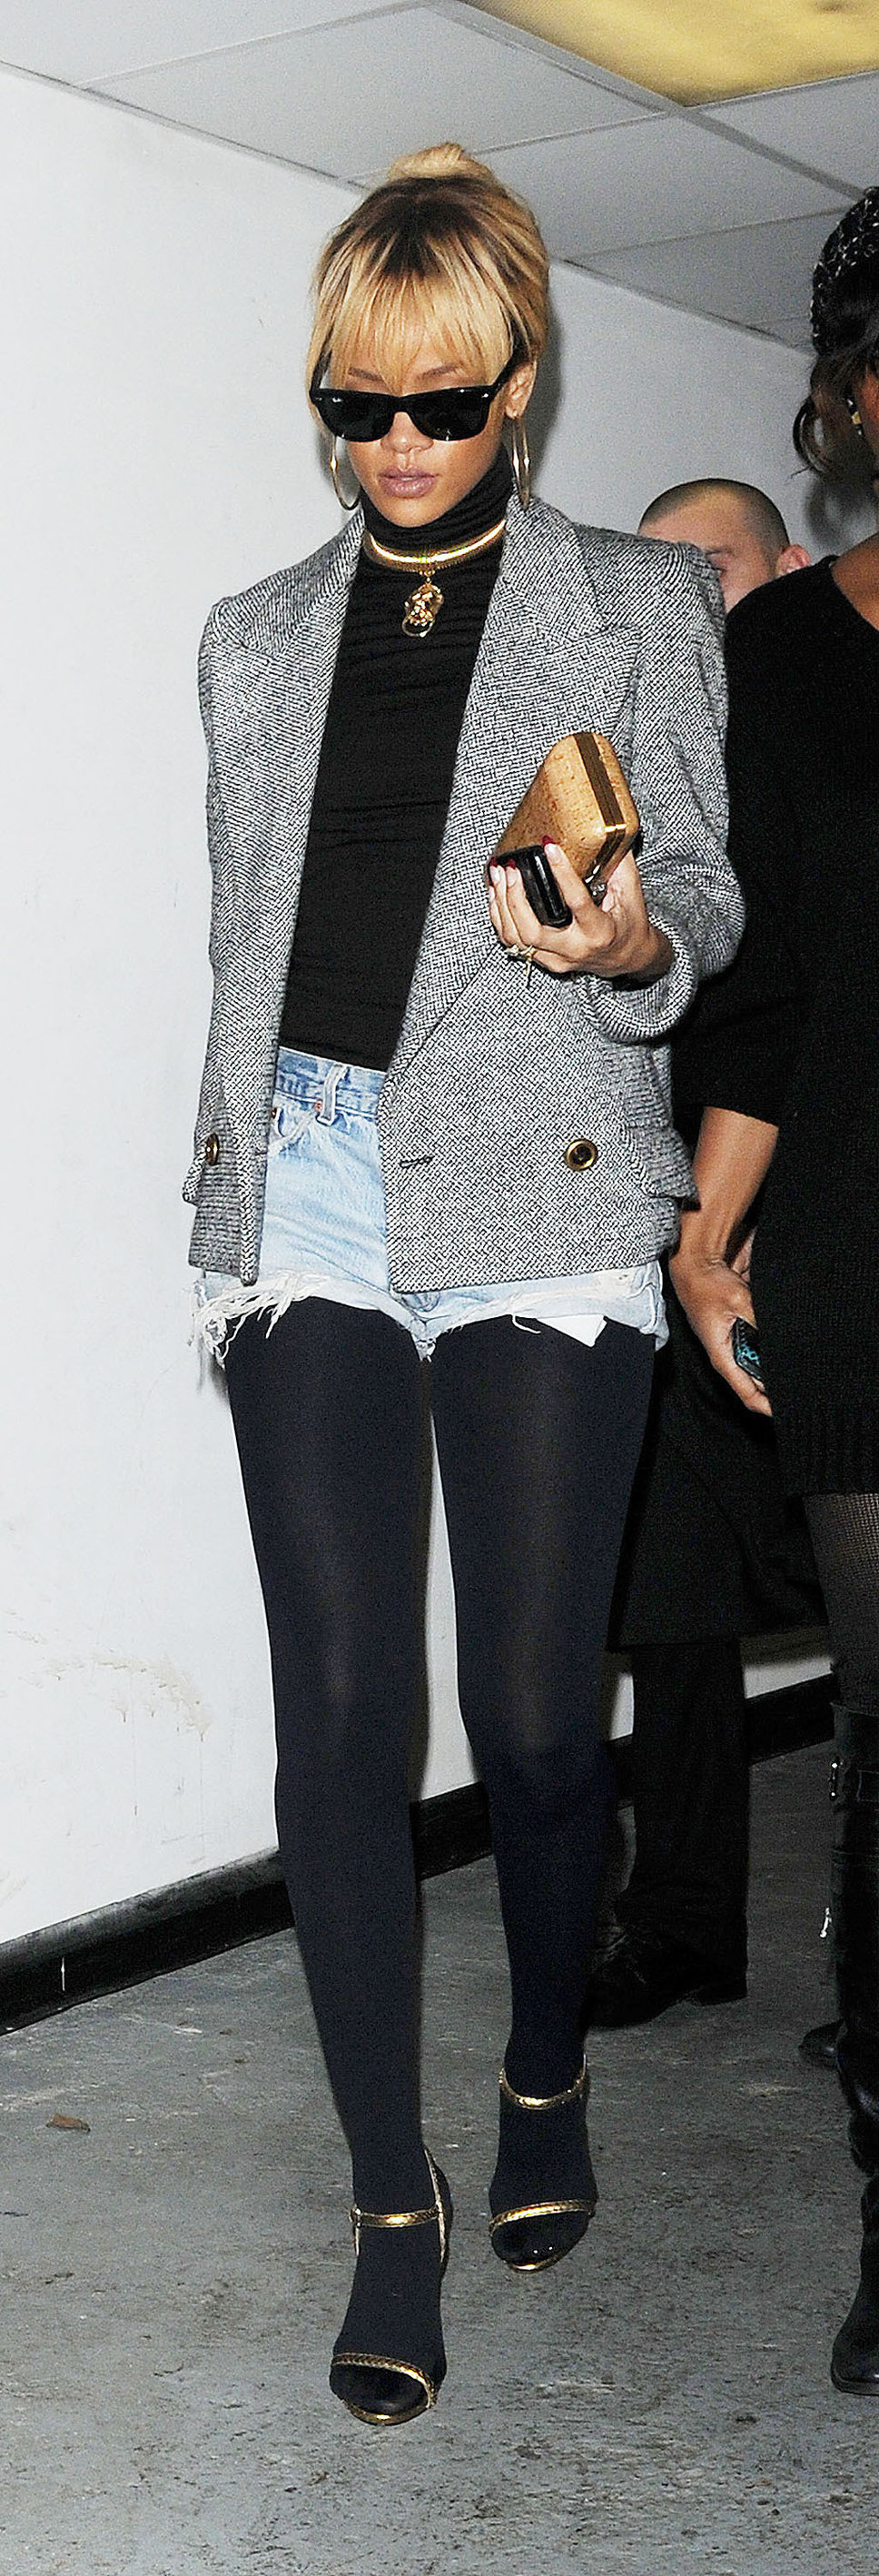 Rihanna - denim cutoffs & black tights